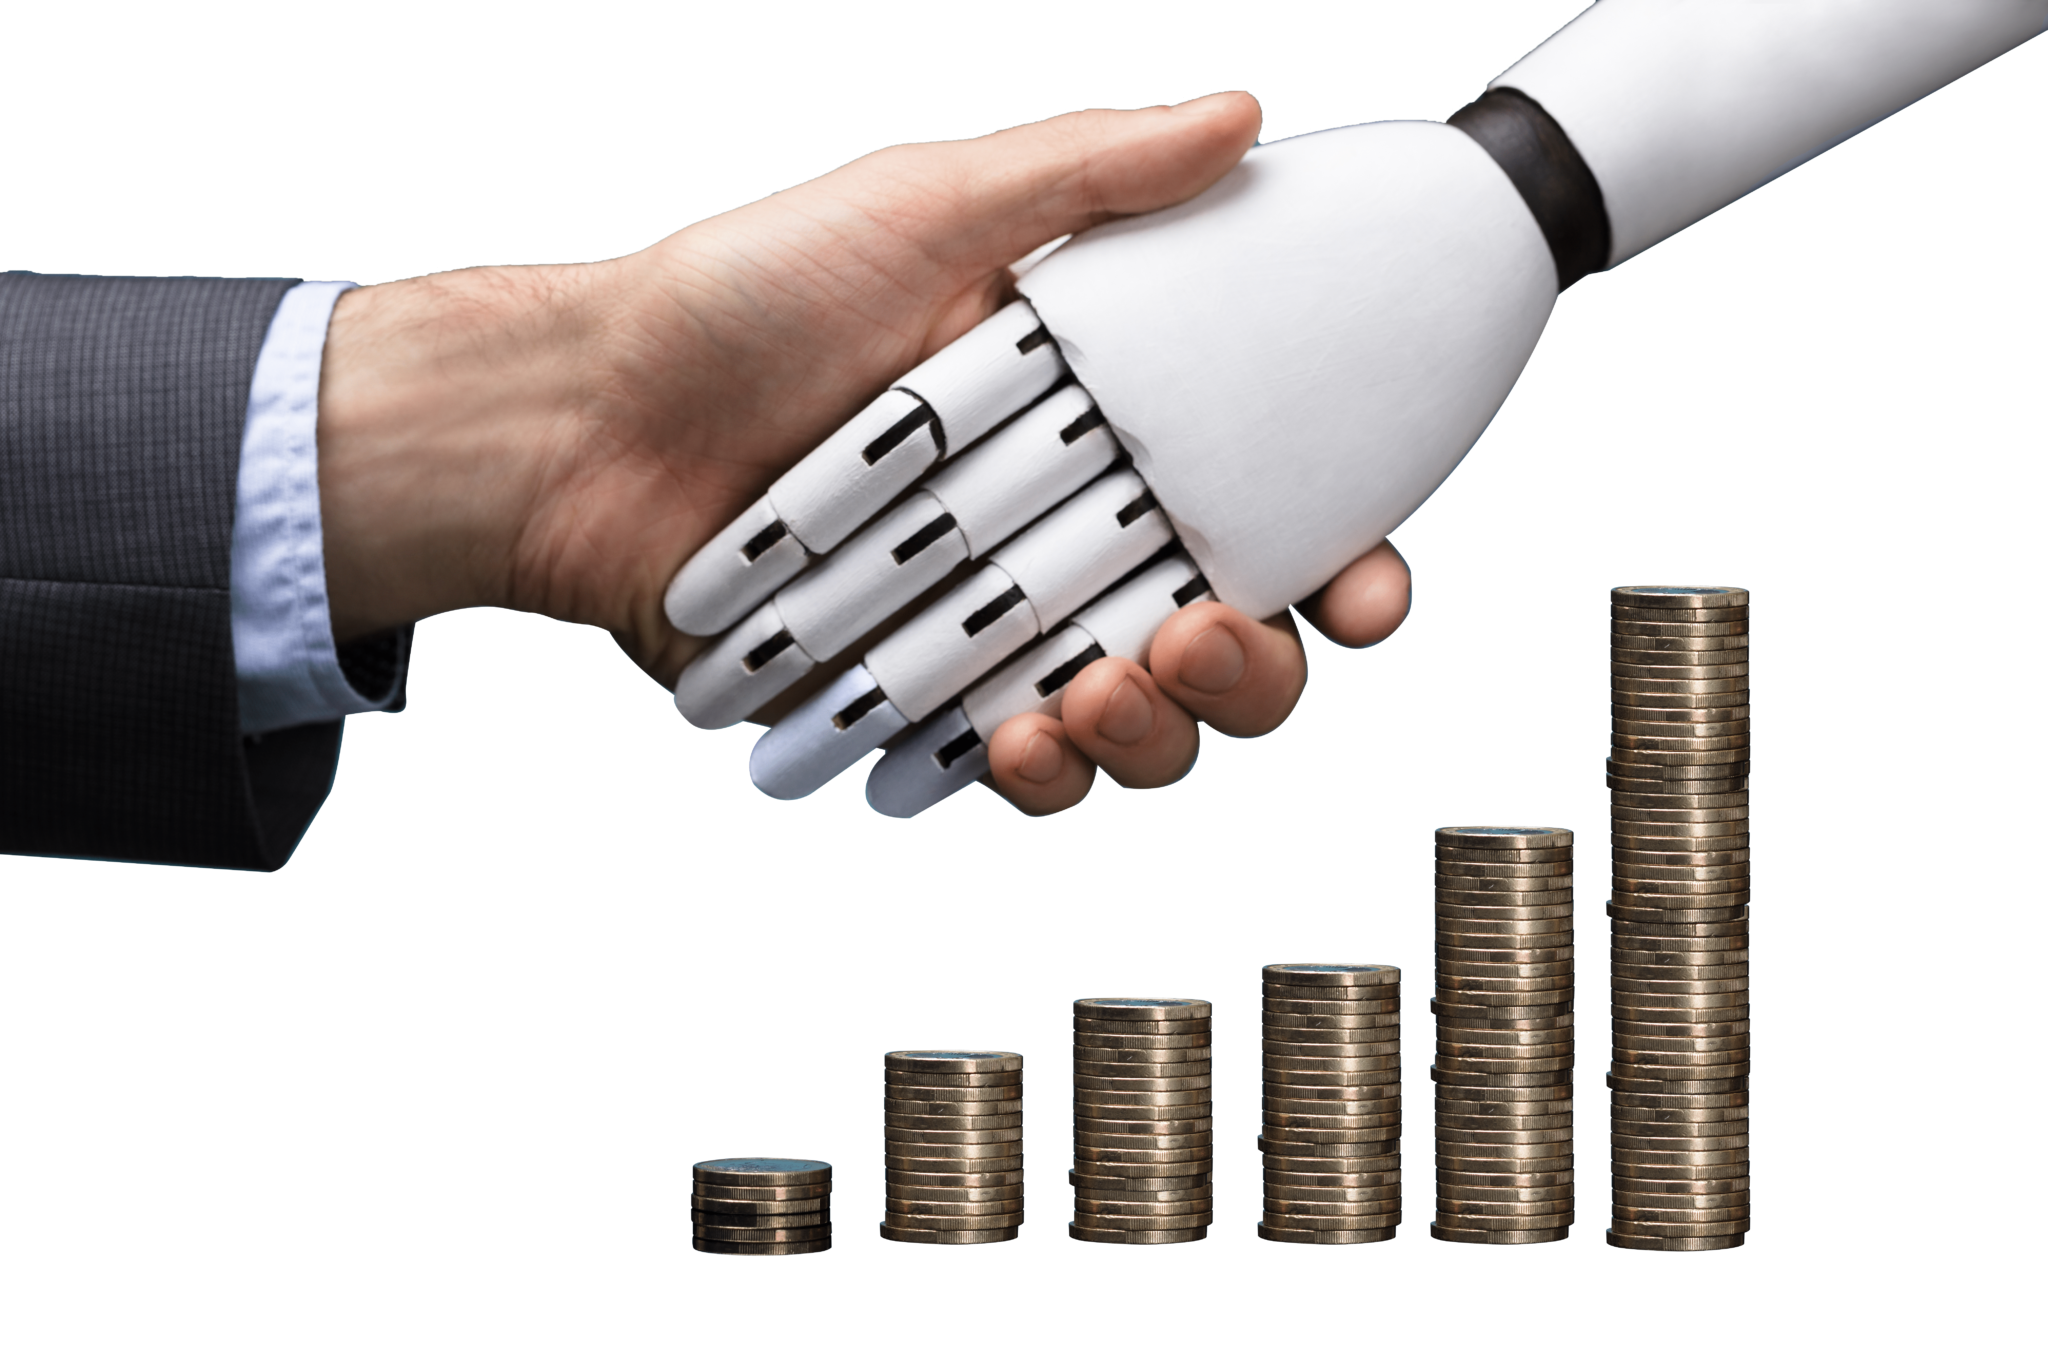 Artificial Intelligence Applications - AI in Banking